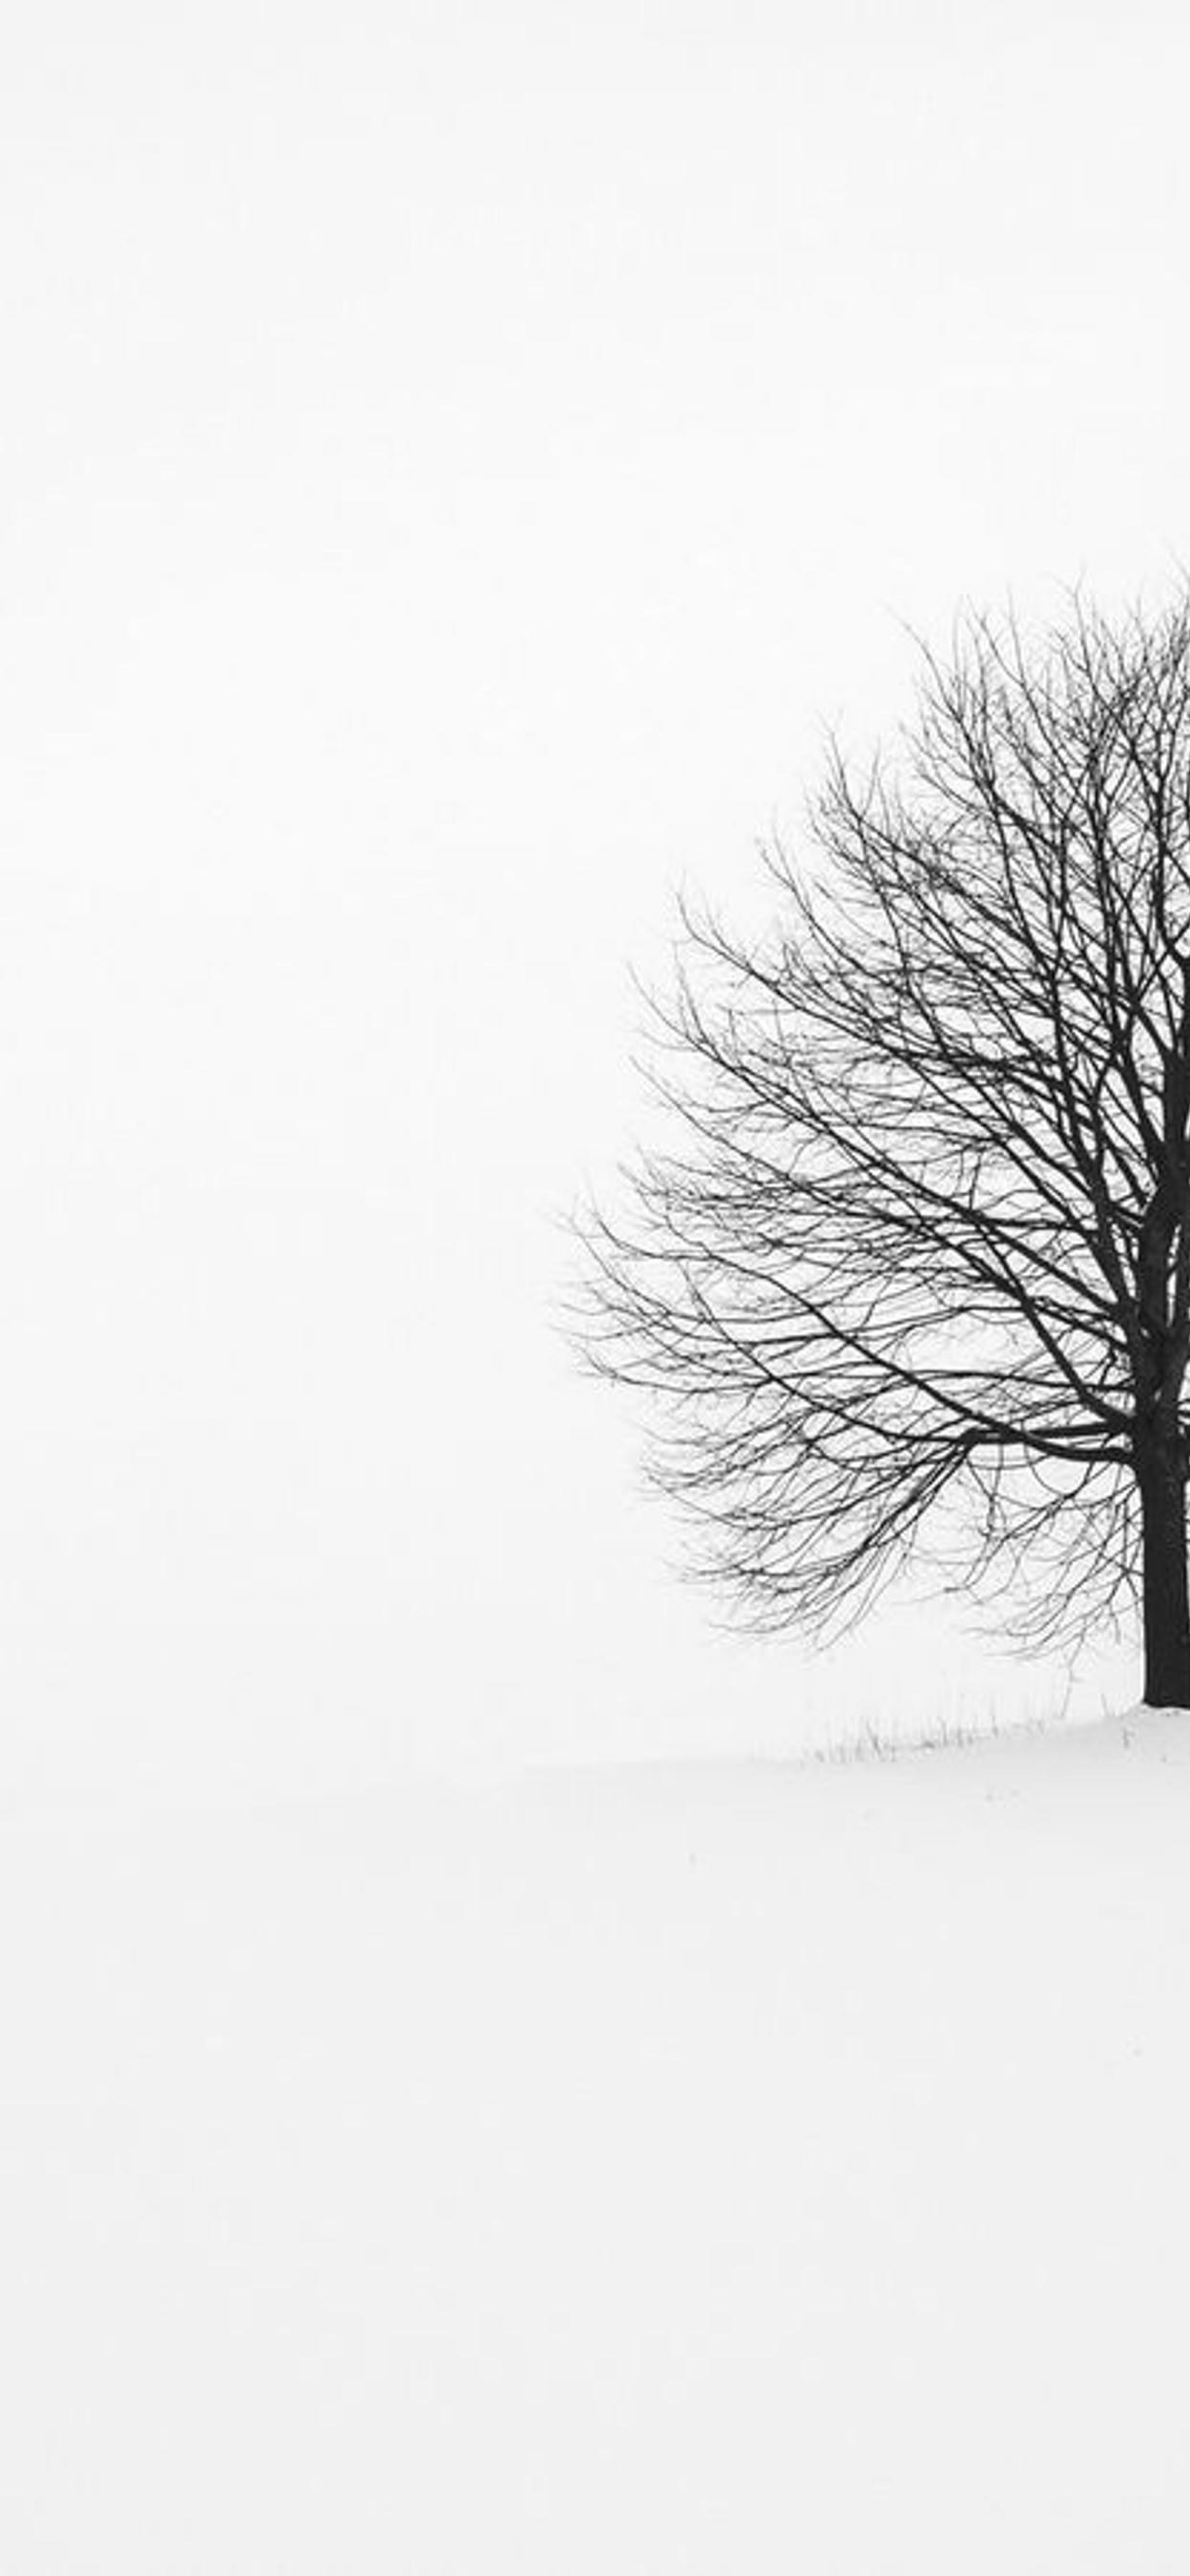 White Nature And One Single Tree Hd Wallpaper